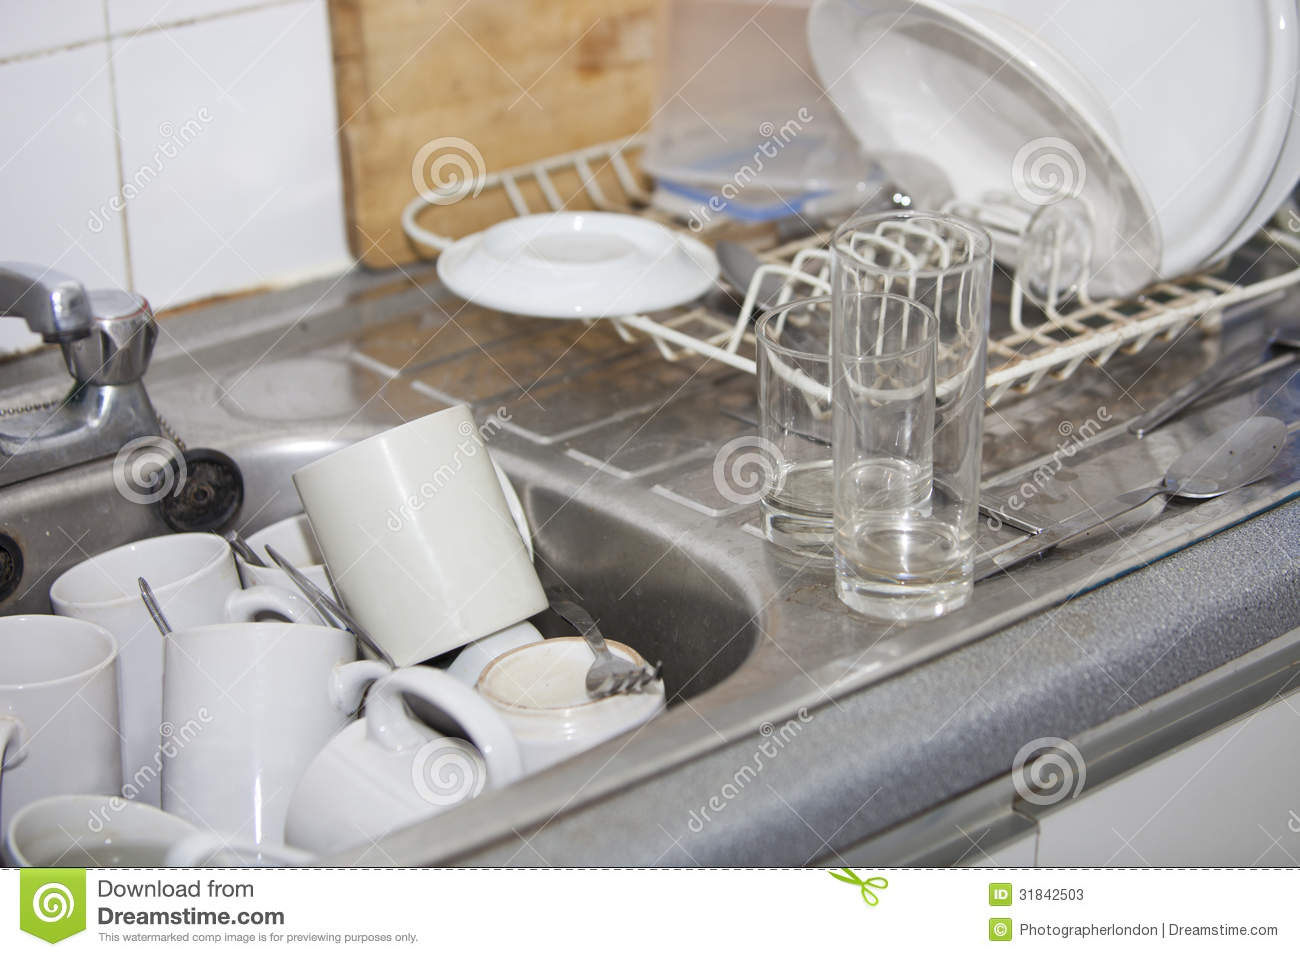 Washing-up In Office Kitchen Sink Stock Photos - Image: 31842503